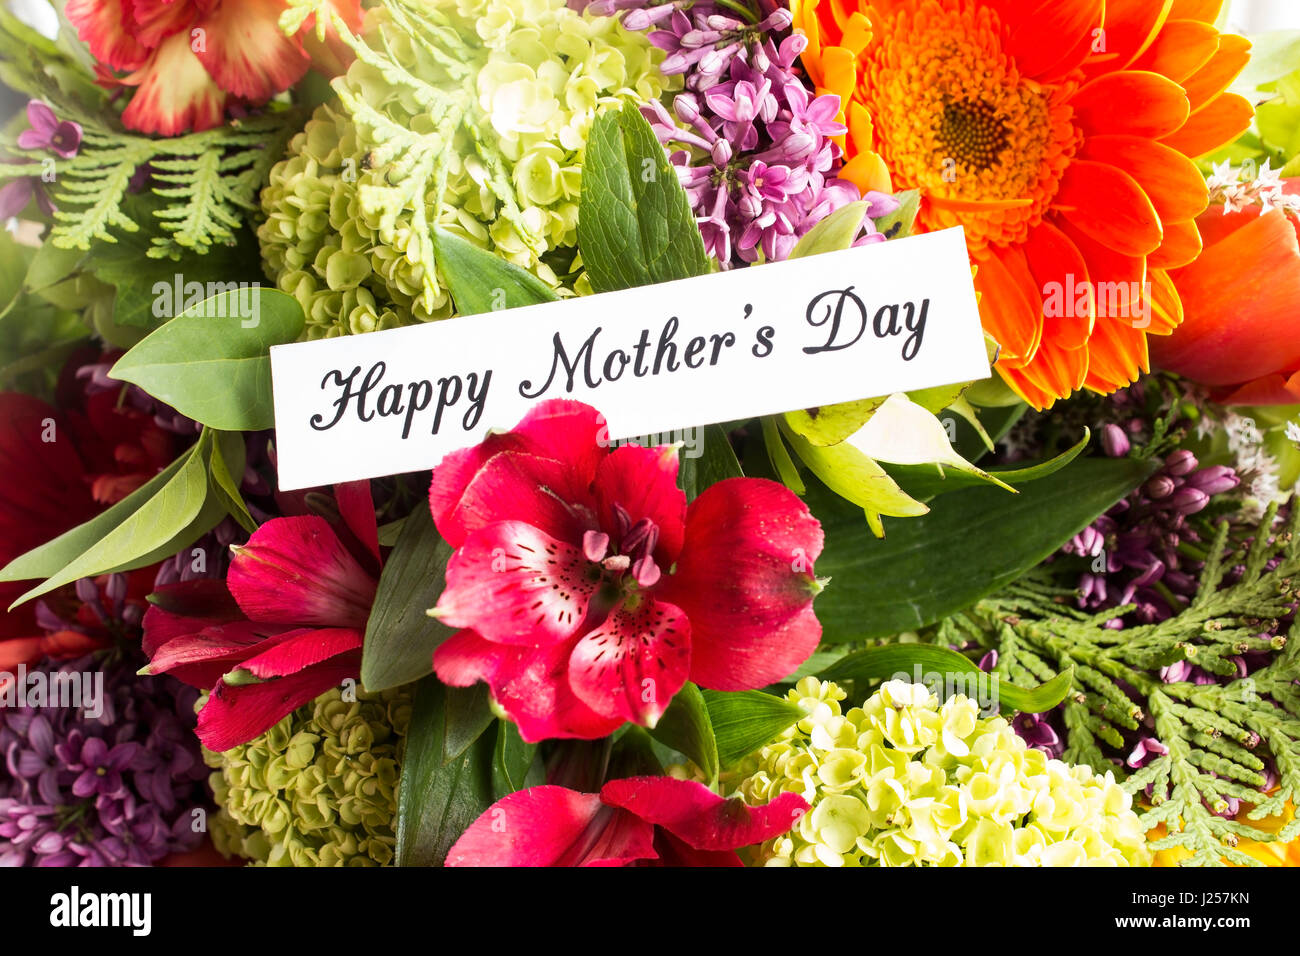 Happy Mothers Day Greeting Card With Bouquet Of Spring Flowers